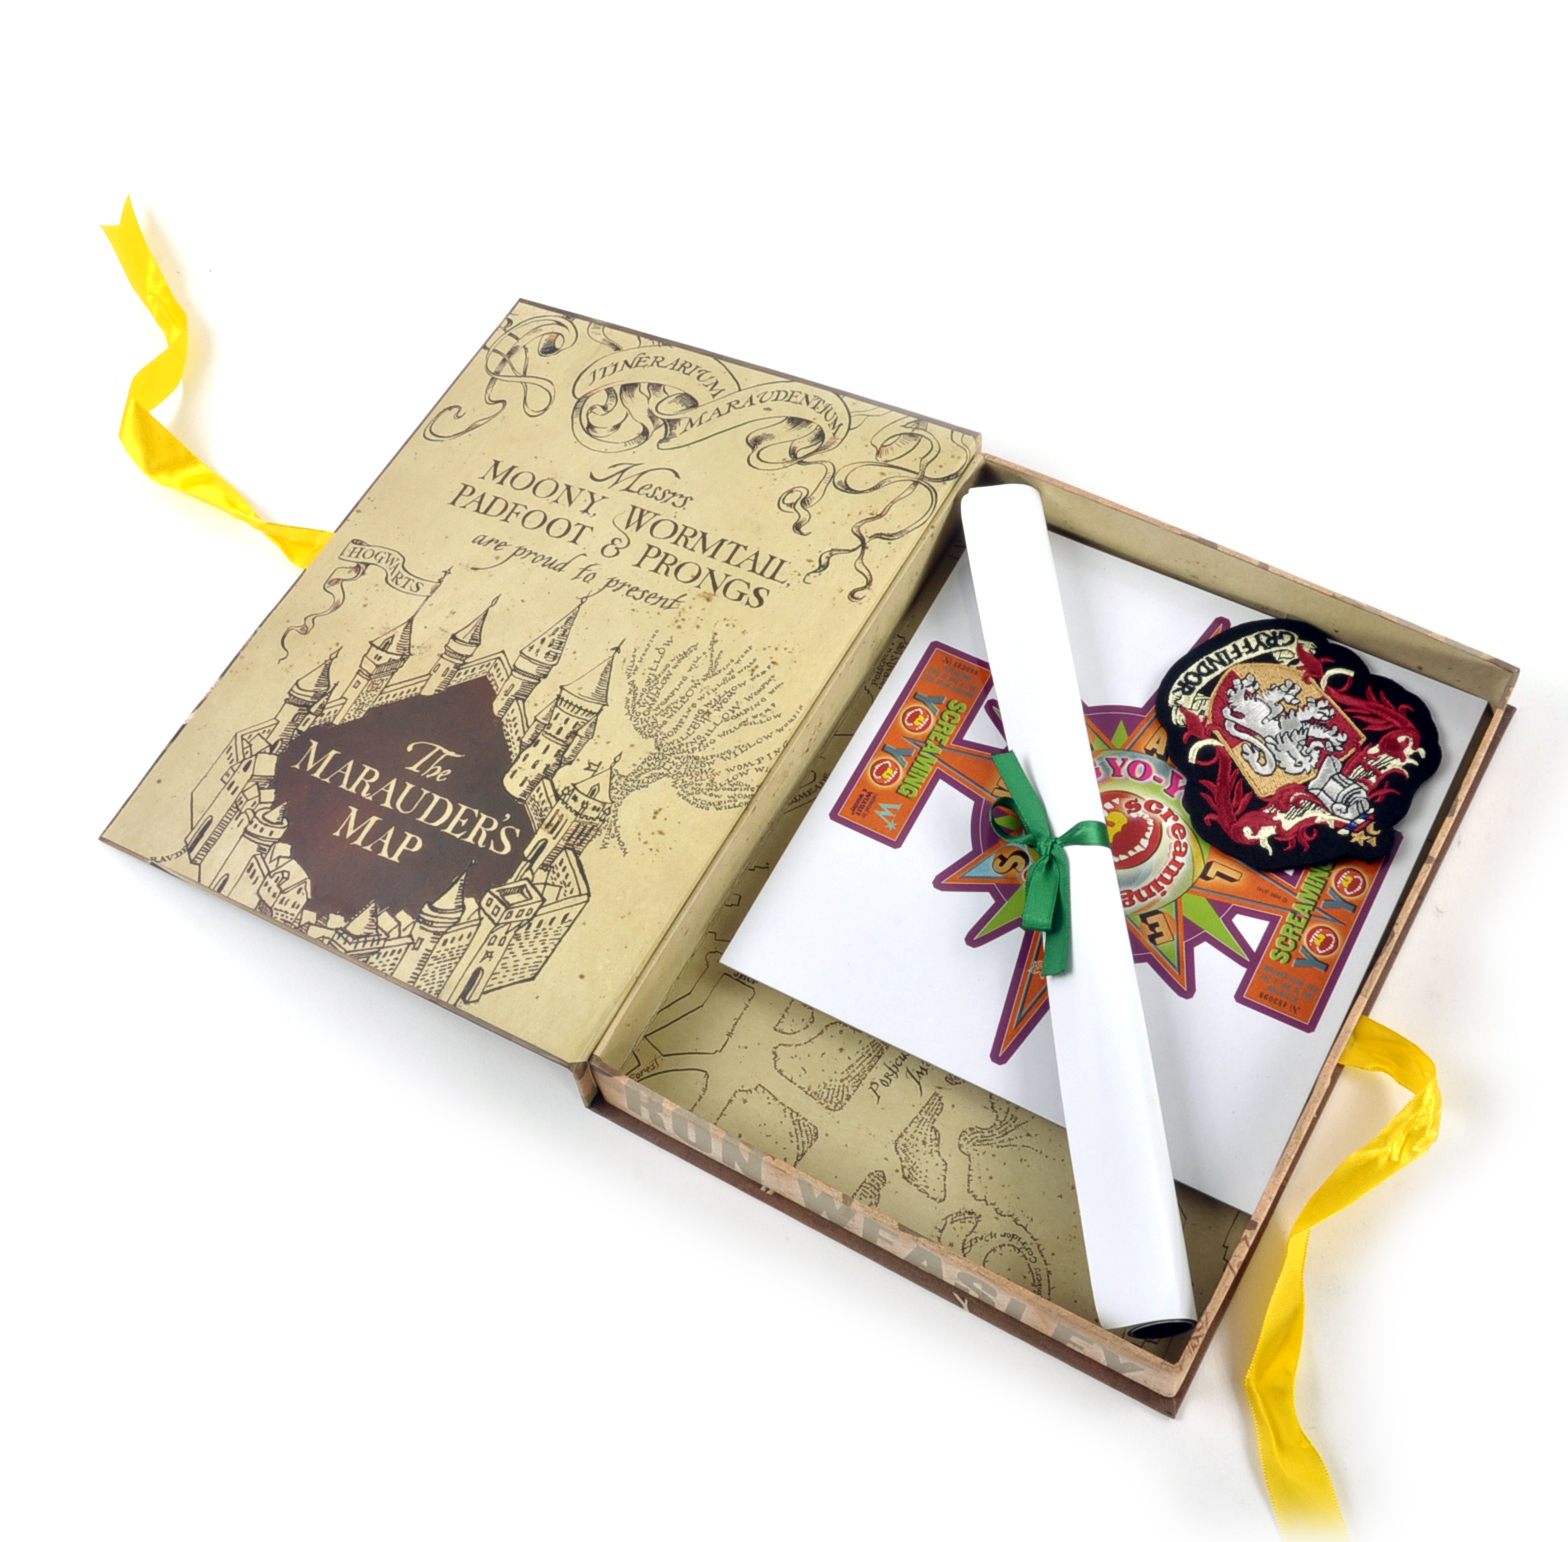 Ron weasley harry potter film artefact box a trove of replica ron weasley harry potter film artefact box a trove of replica harry potter documents and keepsakes bookmarktalkfo Image collections